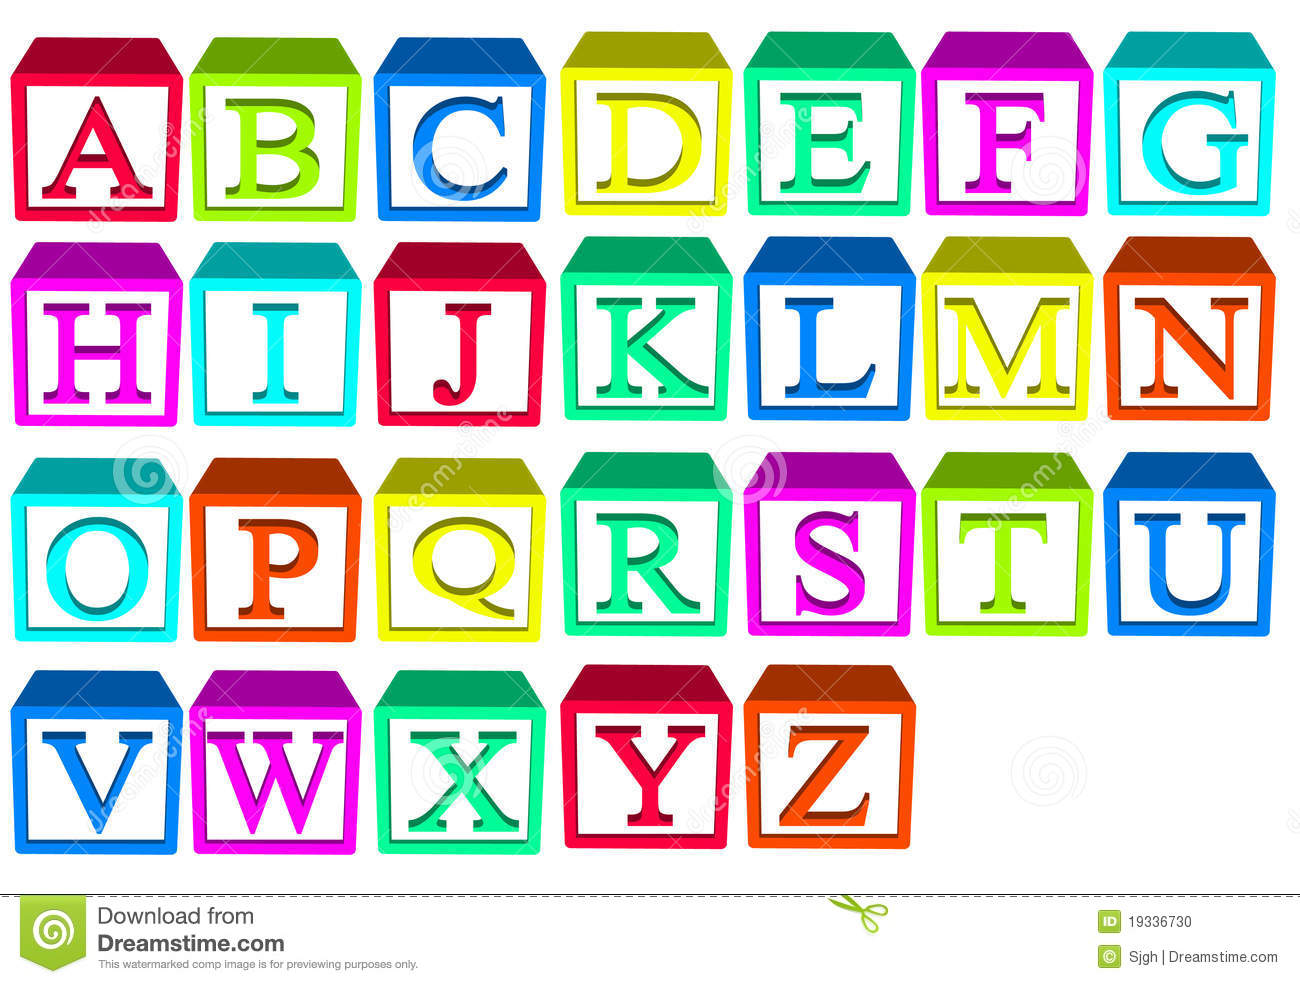 Alphabet blocks for child stack and build your words.